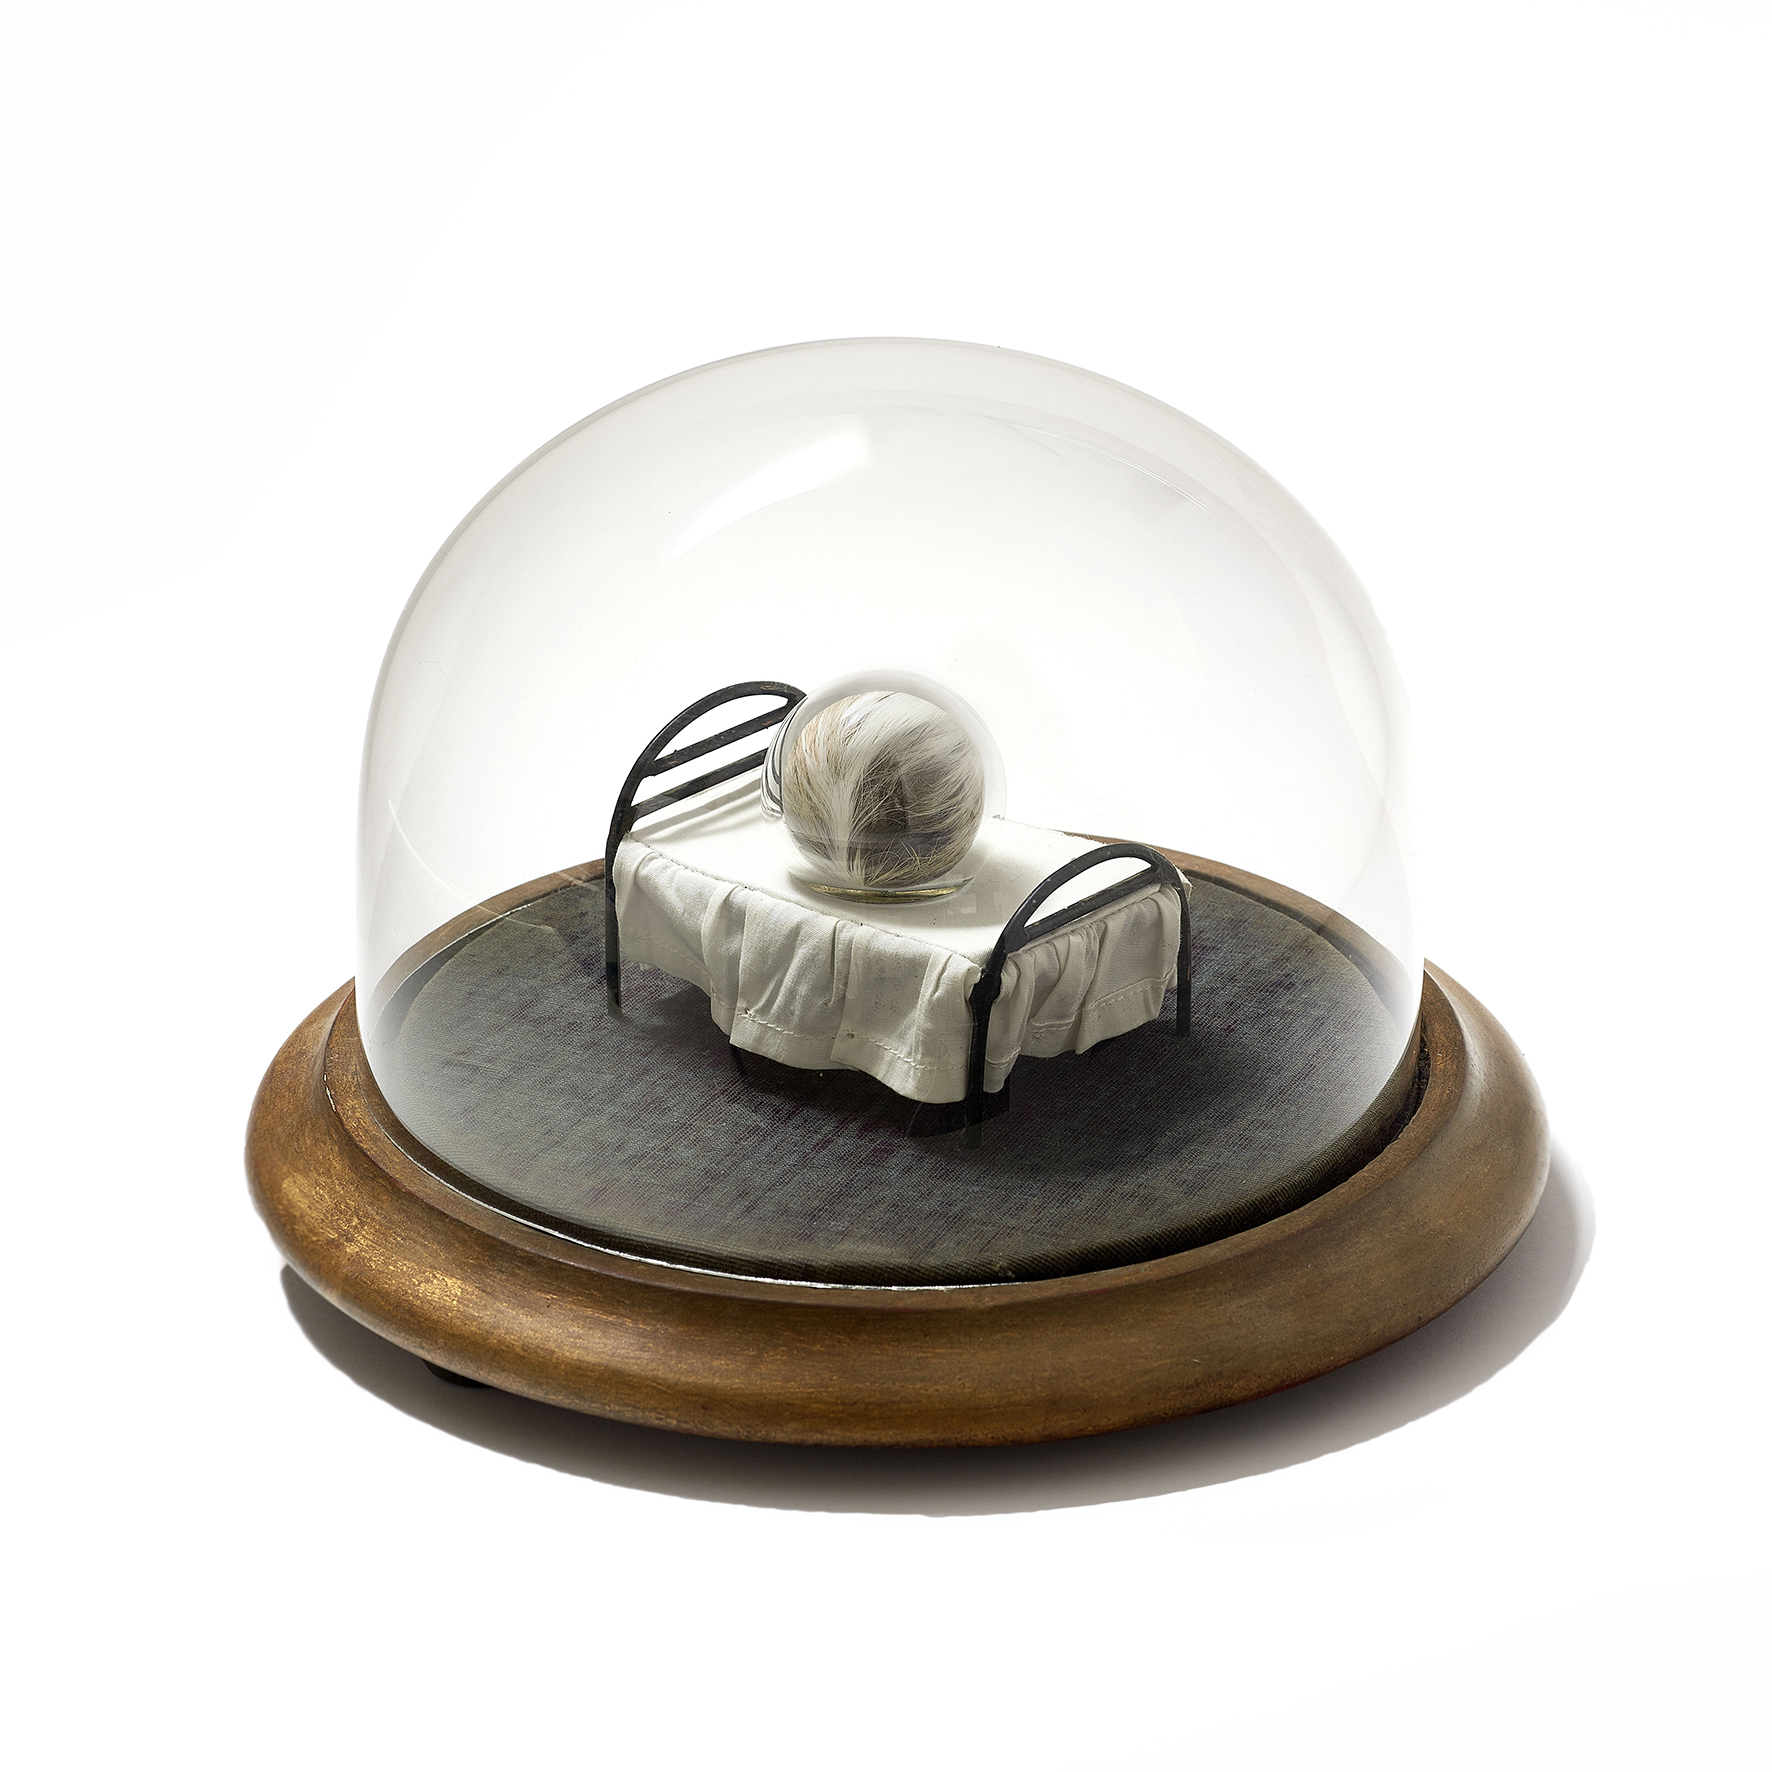 Seed on Bed, 2017, vintage fur, handblown glass, cotton, steel inside antique glass dome, 8x6x5.5cm (without dome), 11.5x17.17cm (with dome) rel=